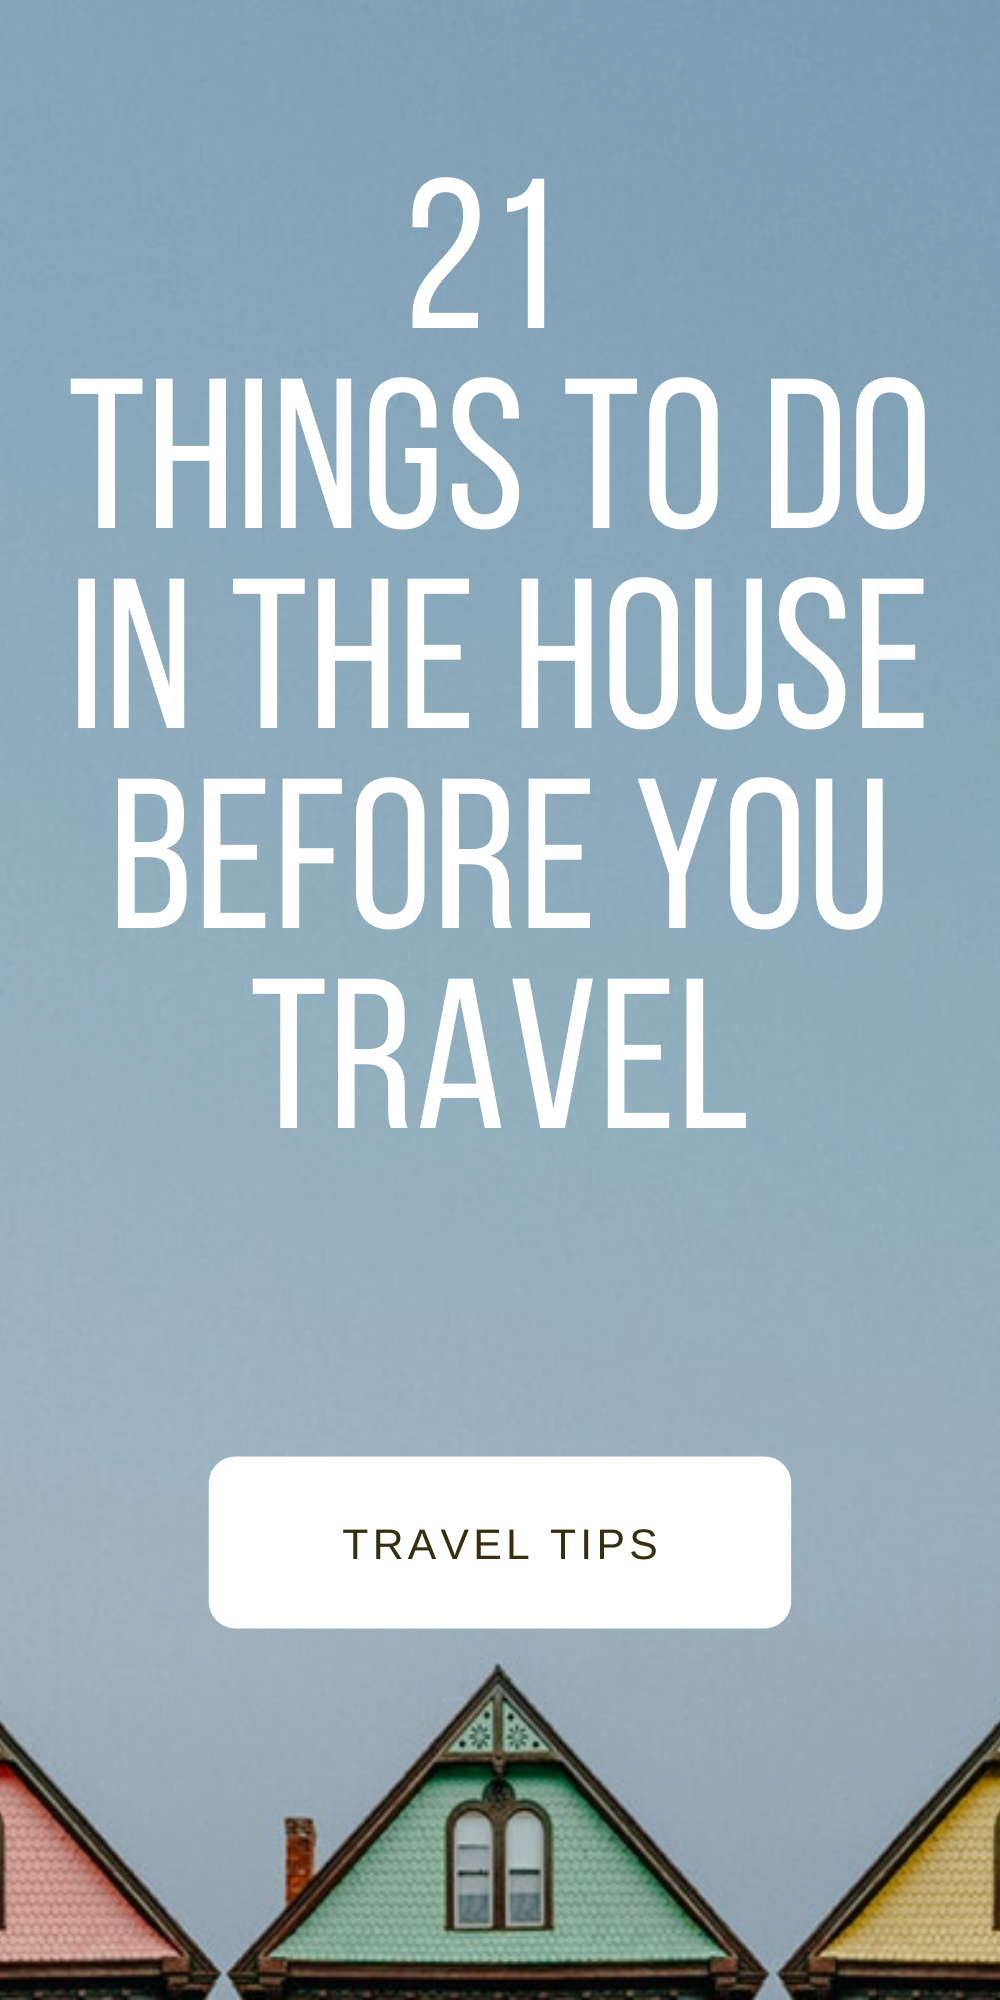 When we go on a trip, we are all excited! However, do not forget to prepare your house/apartment for the return! With some tips and a little effort, you will find your house all clean! Amazing no? #travelhacks #cheaptravel #budgettravel #cheapdestinations #travel #travelonabudget #traveldestinations